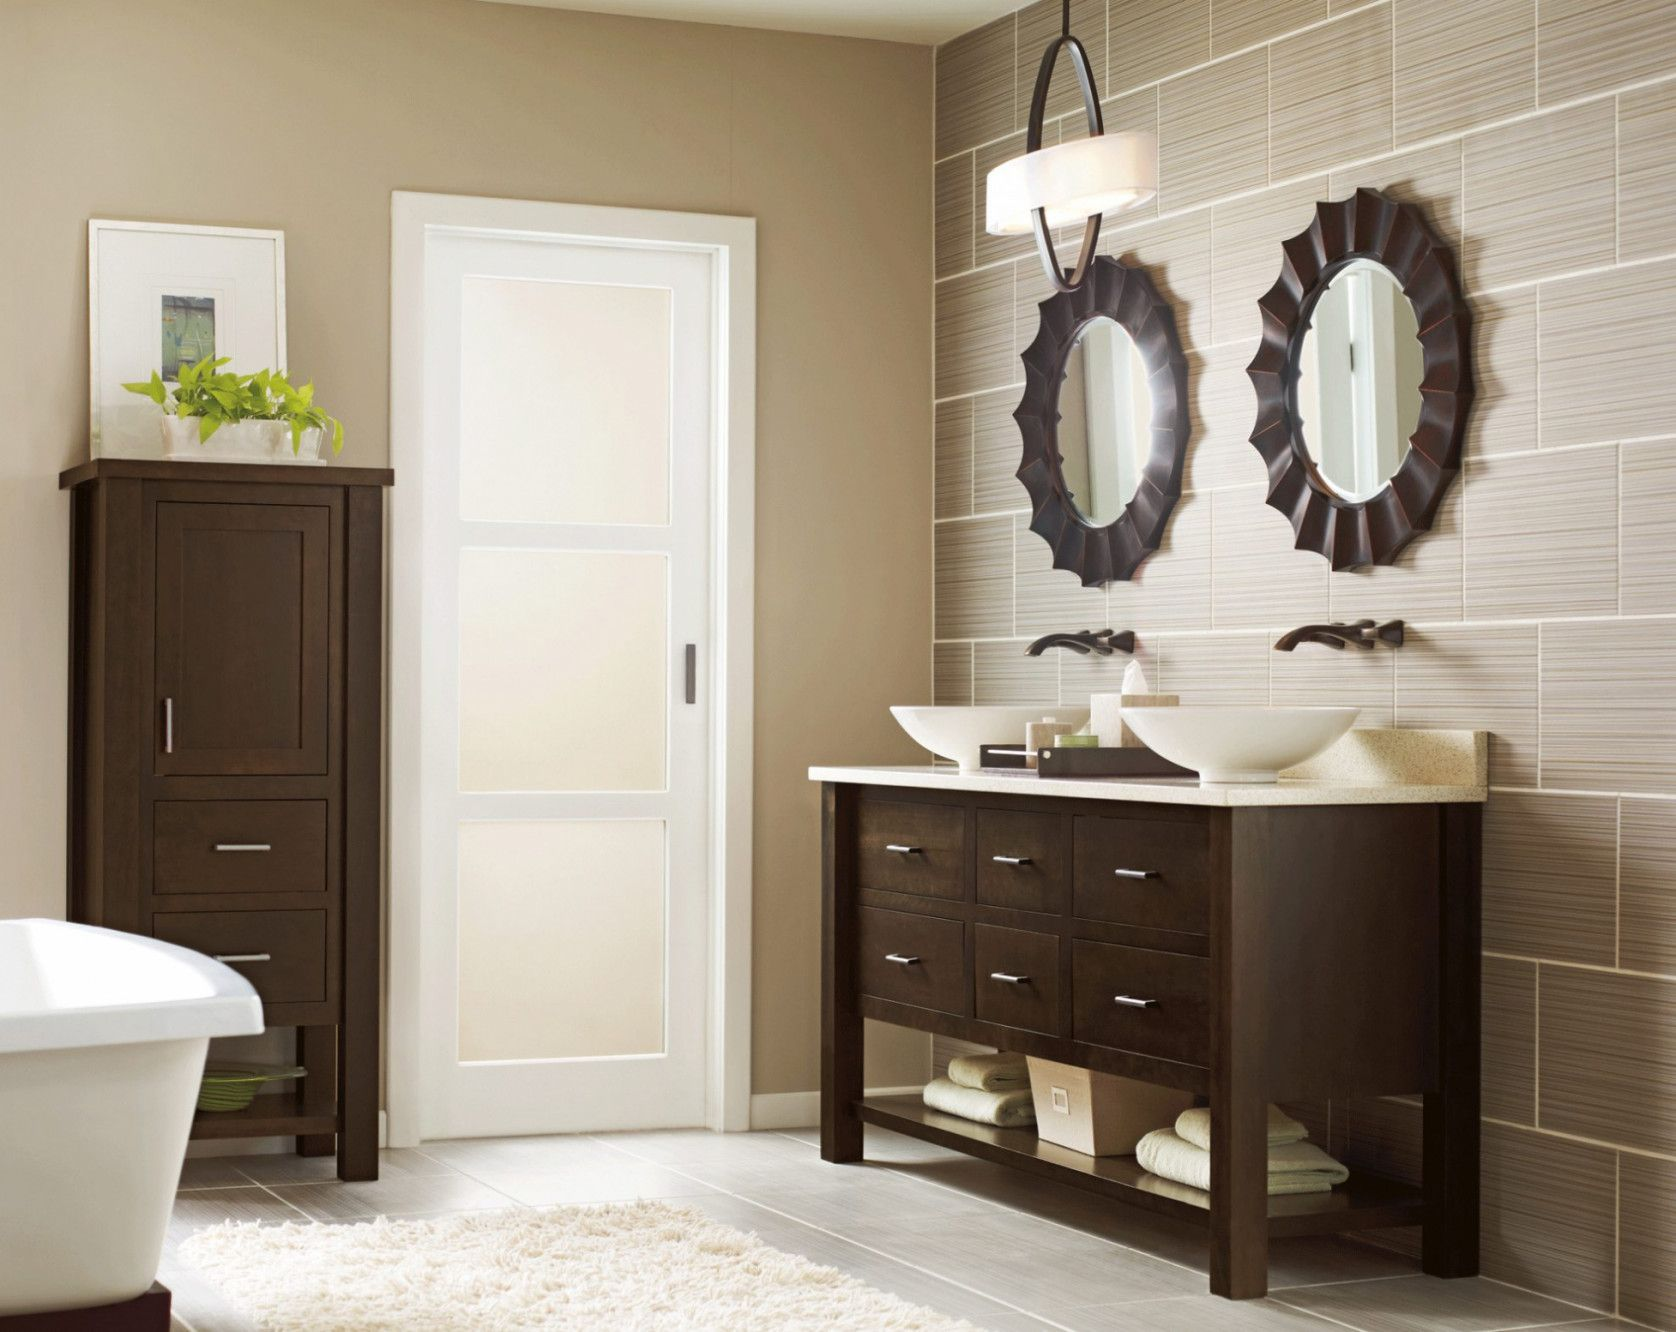 55 Bathroom Cabinets Portland Oregon Kitchen Decorating Ideas Themes Check More At Http